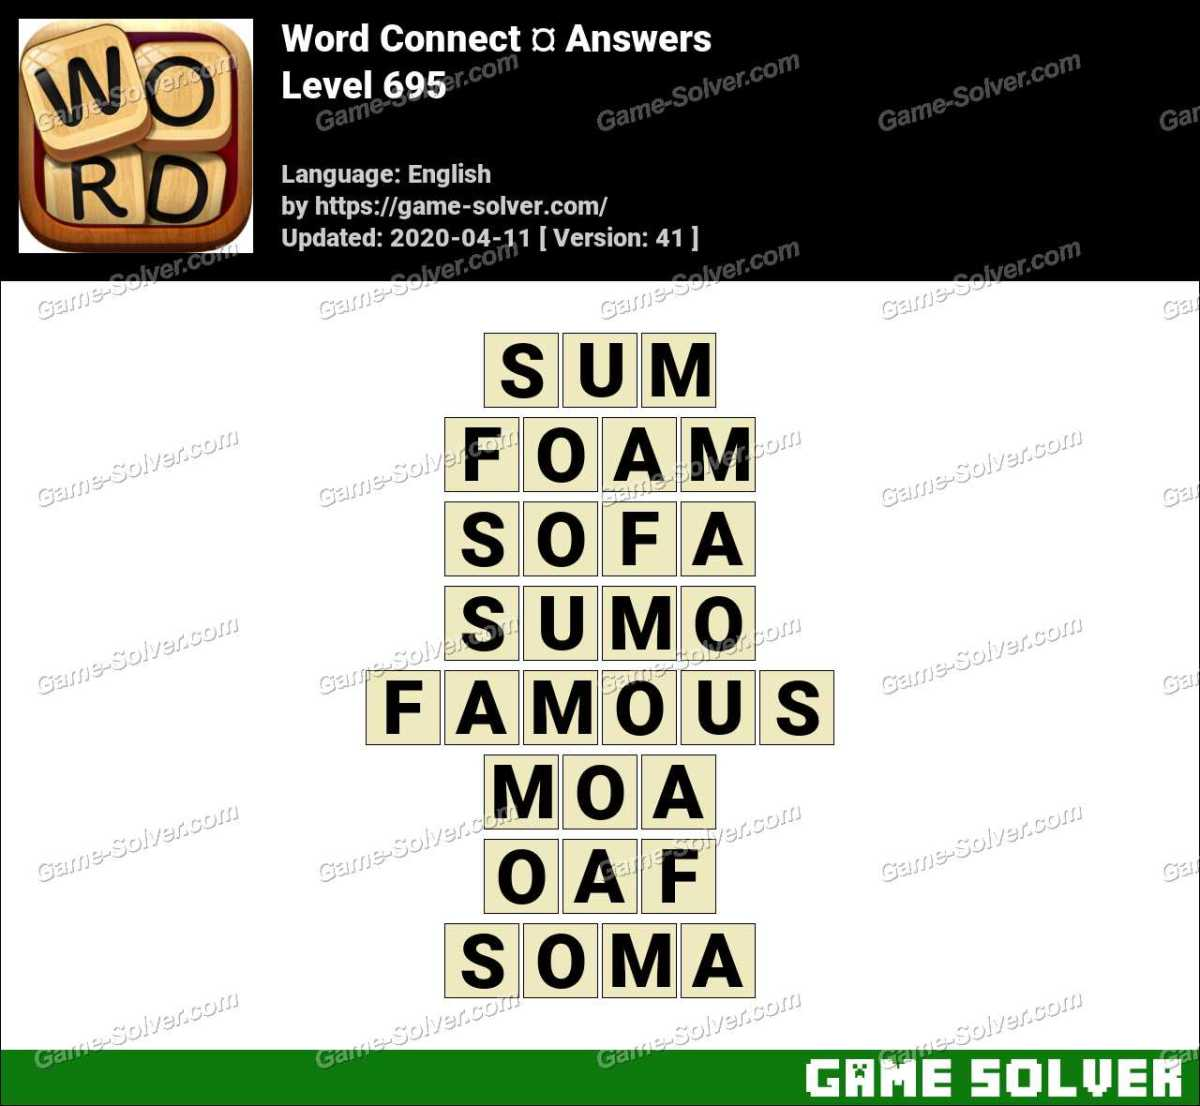 Word Connect Level 695 Answers